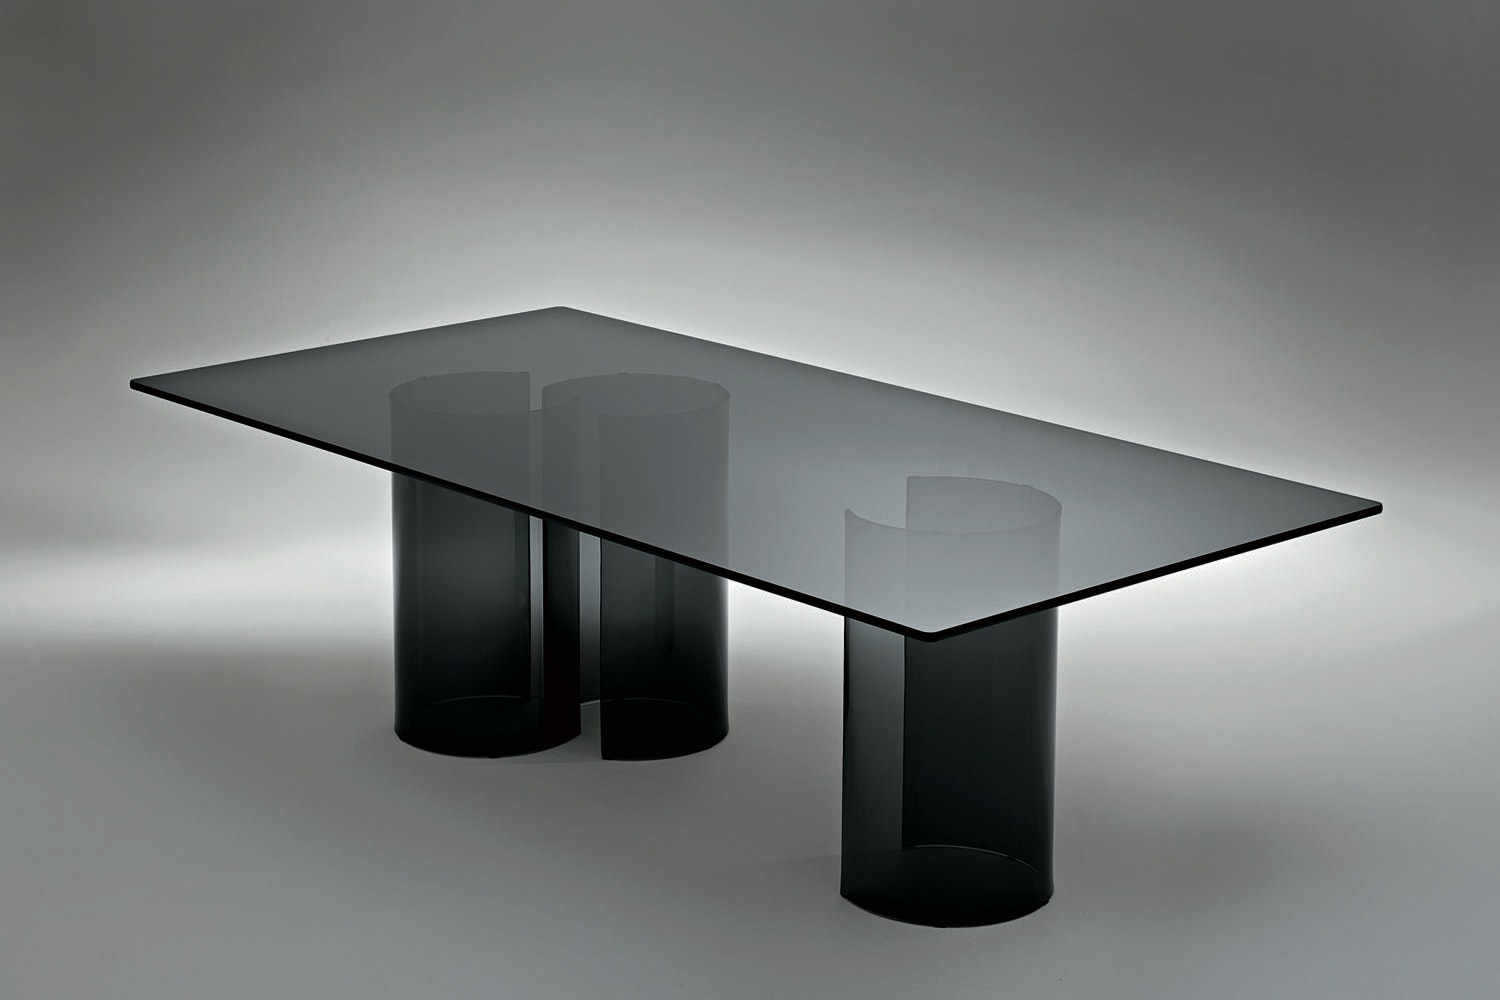 Luxor Bistrot Table by Rodolfo Dordoni for Fiam Italia